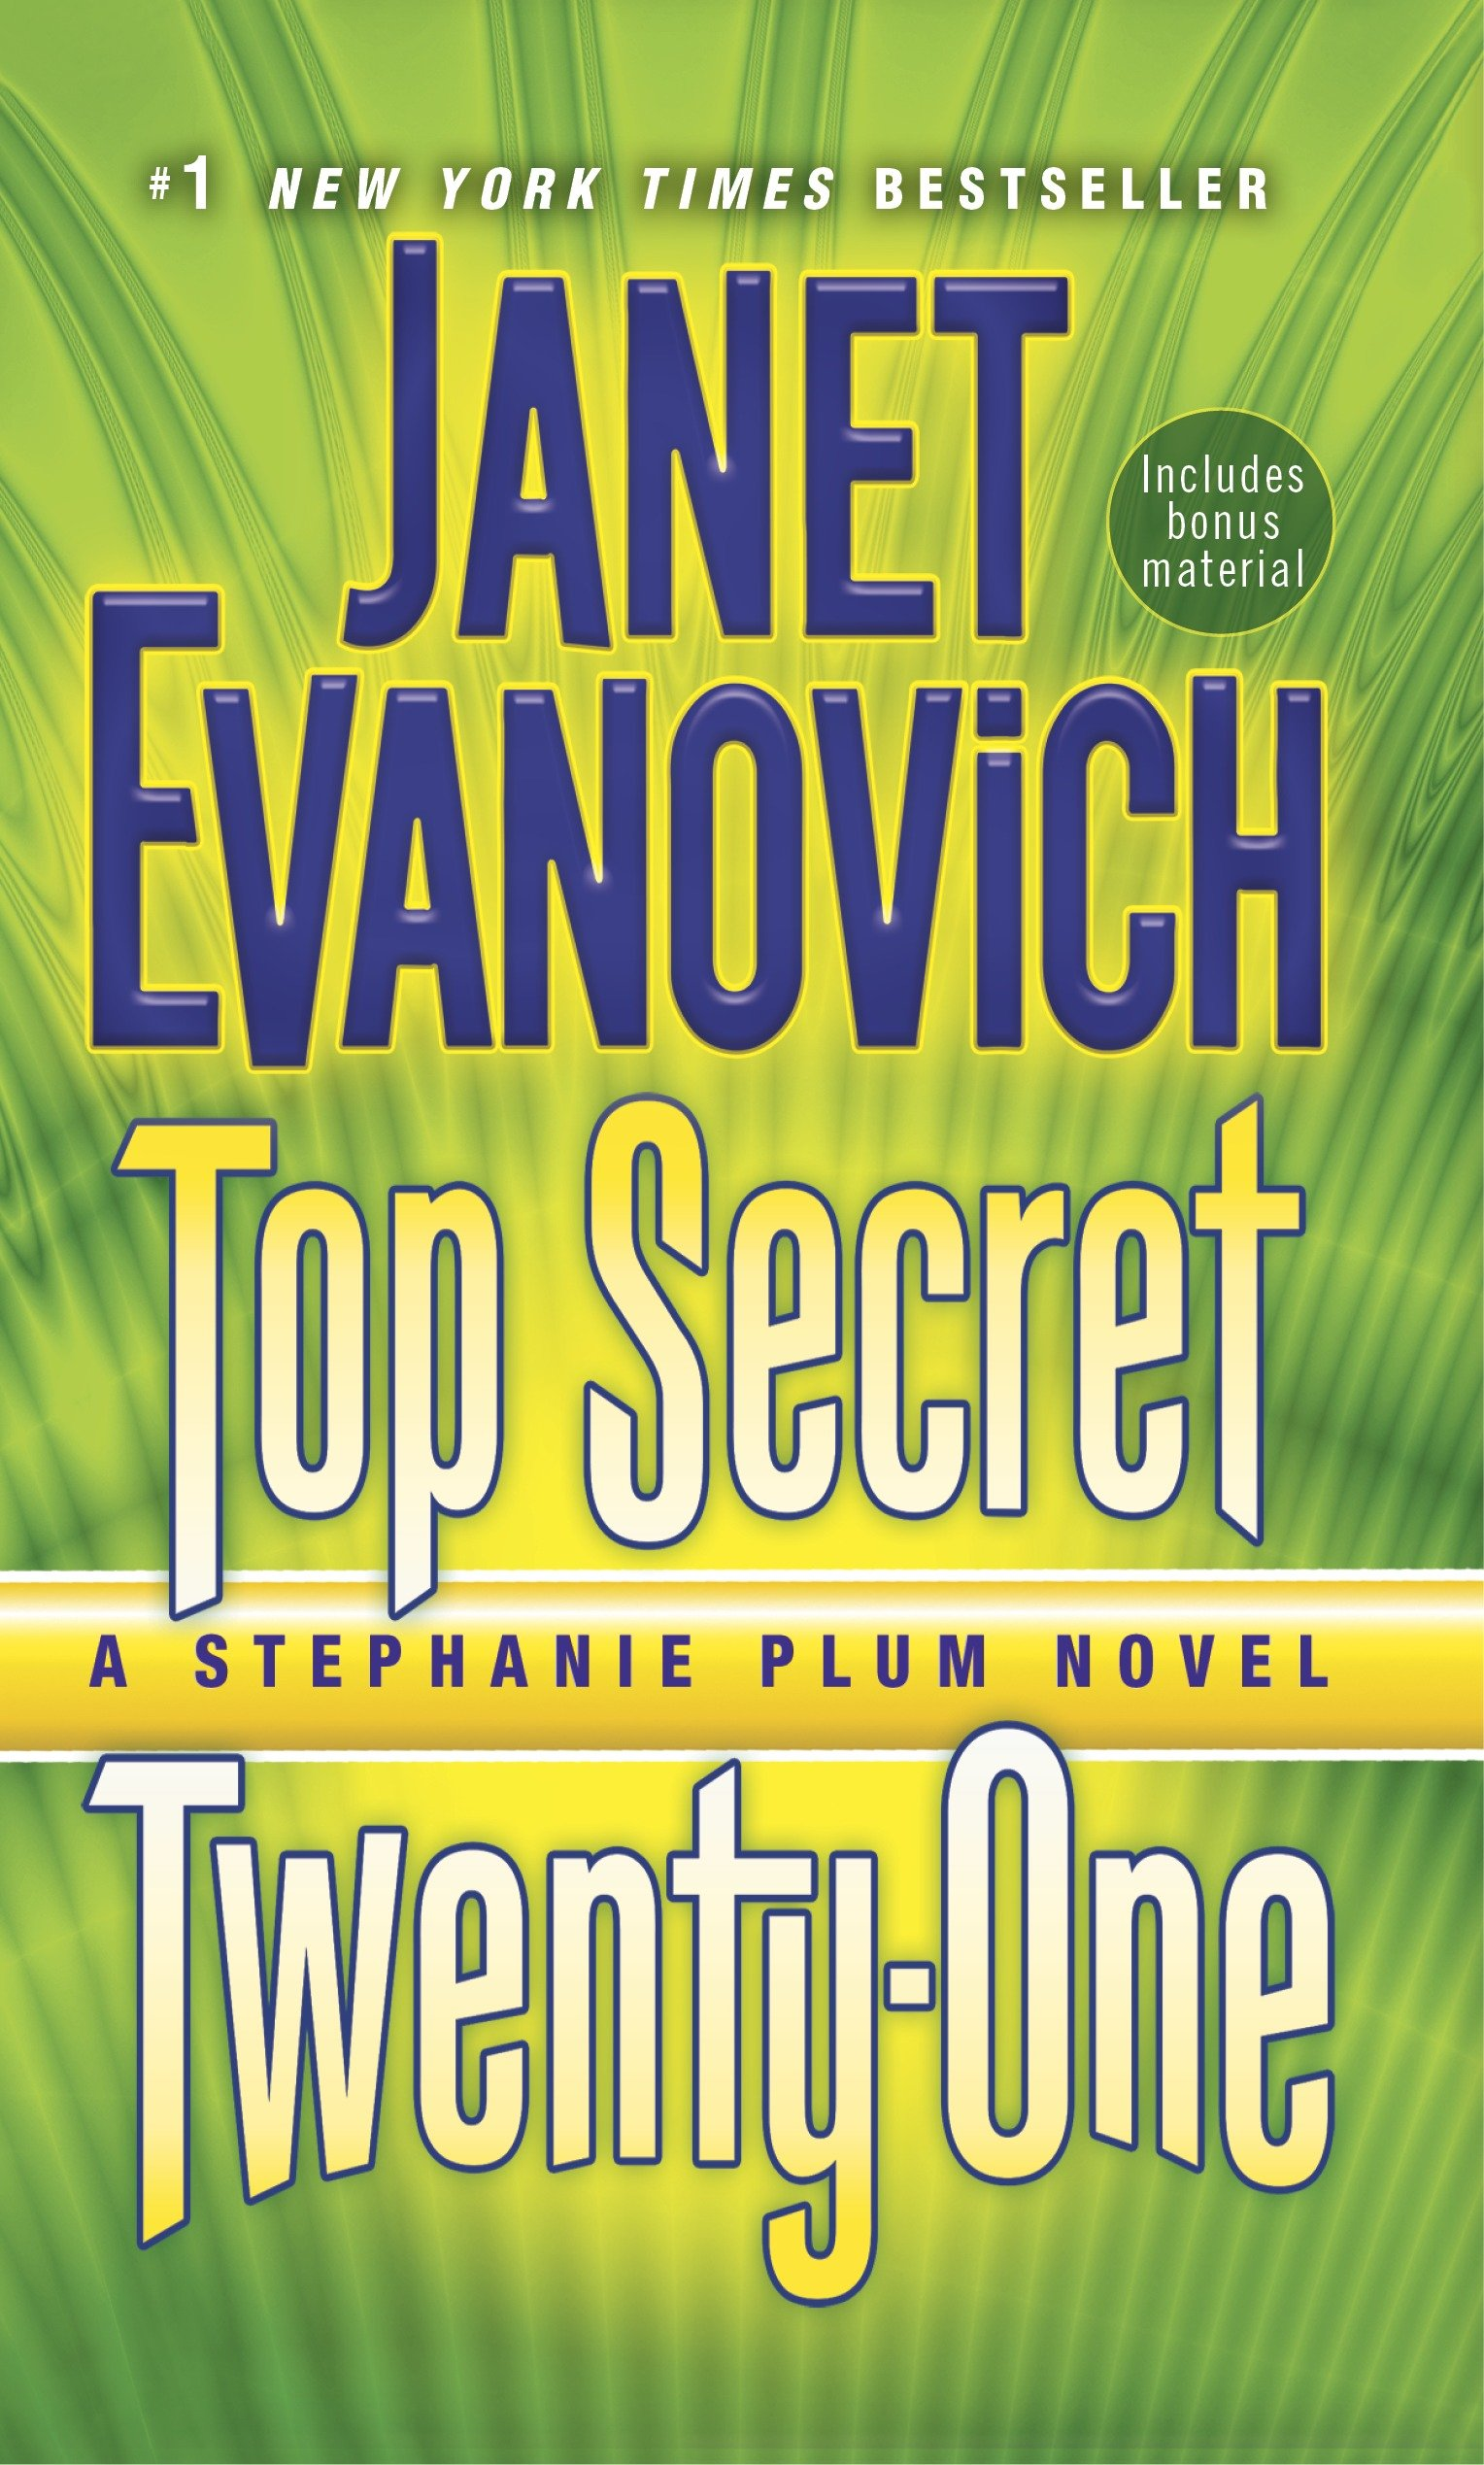 Top secret twenty-one : a Stephanie Plum novel